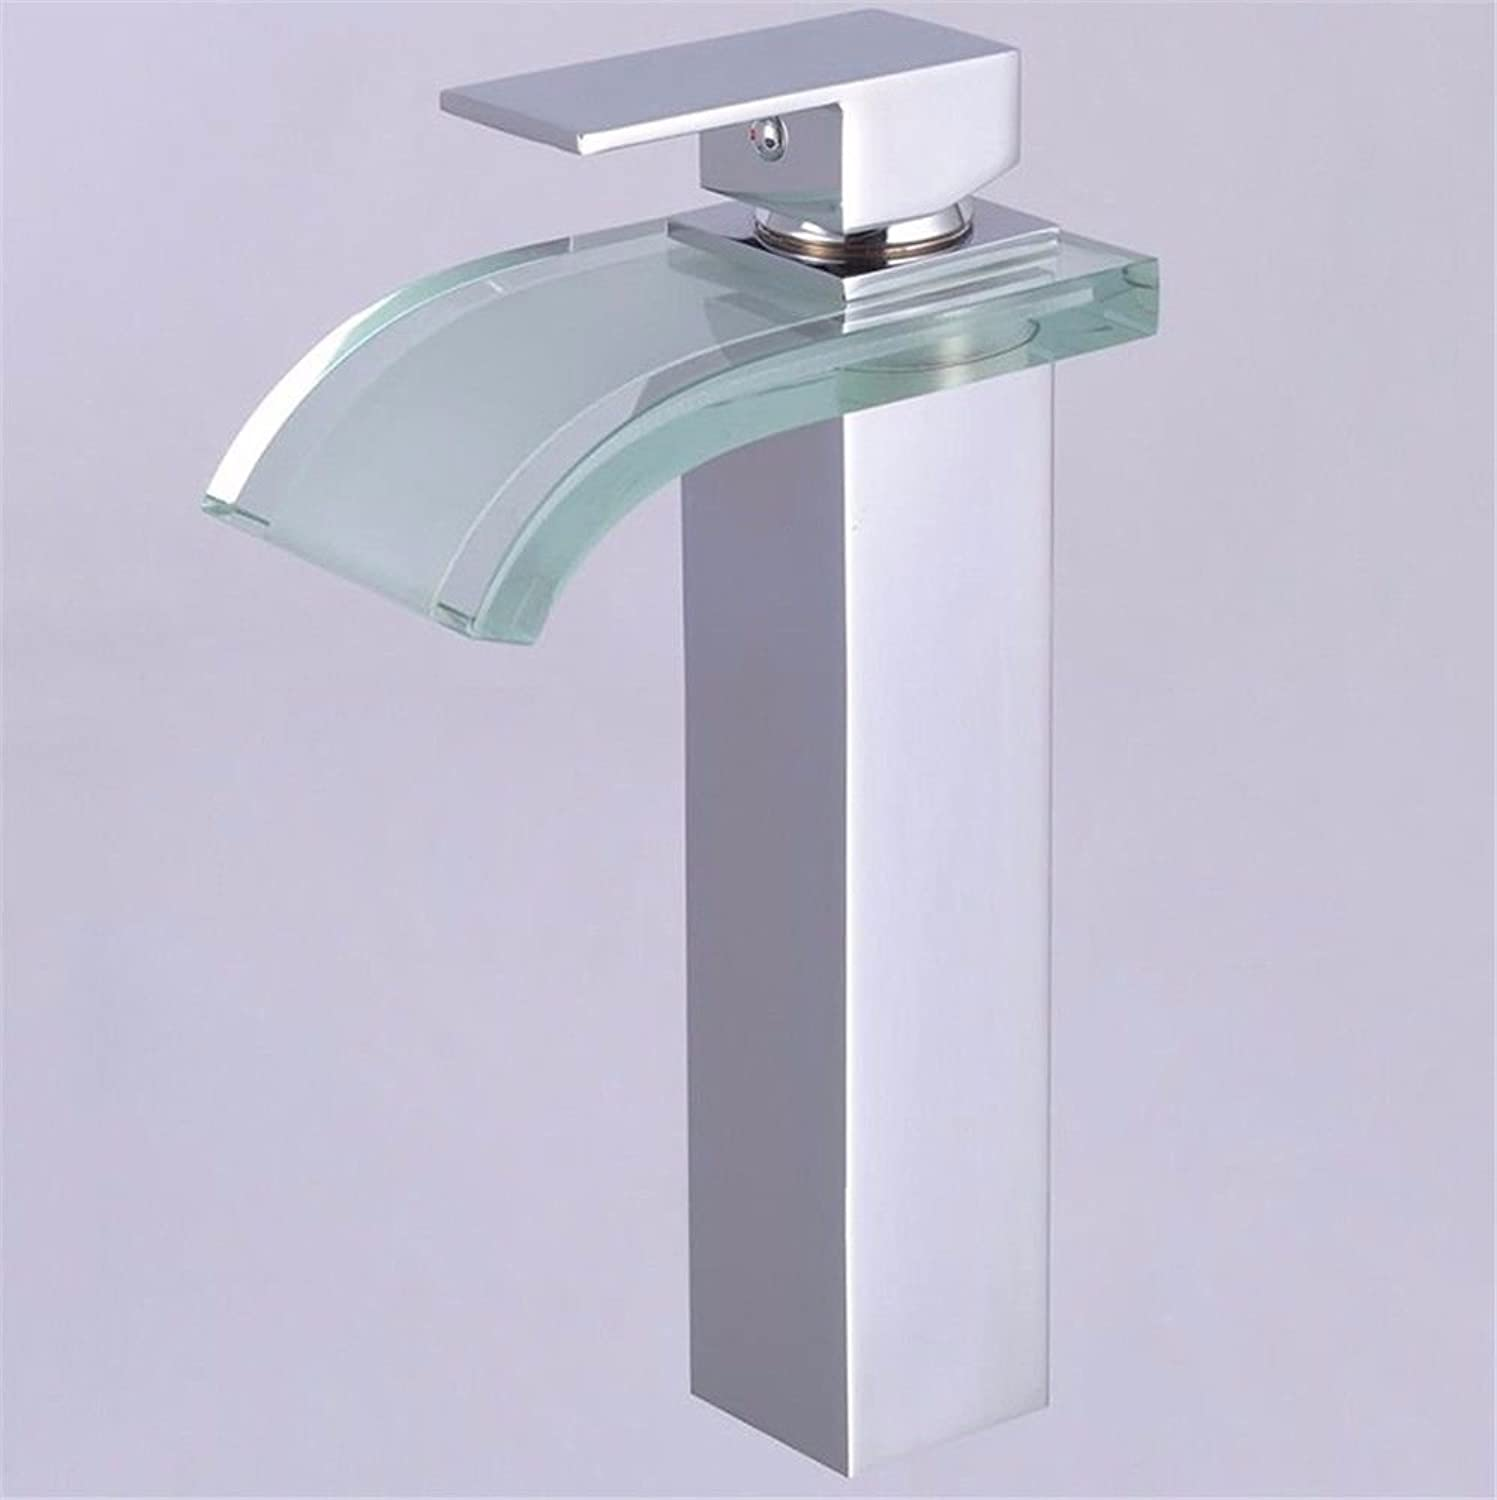 LHbox Basin Mixer Tap Bathroom Sink Faucet Modern glass and cold water ceramic valve single hole Single Handle bathroom basin mixer